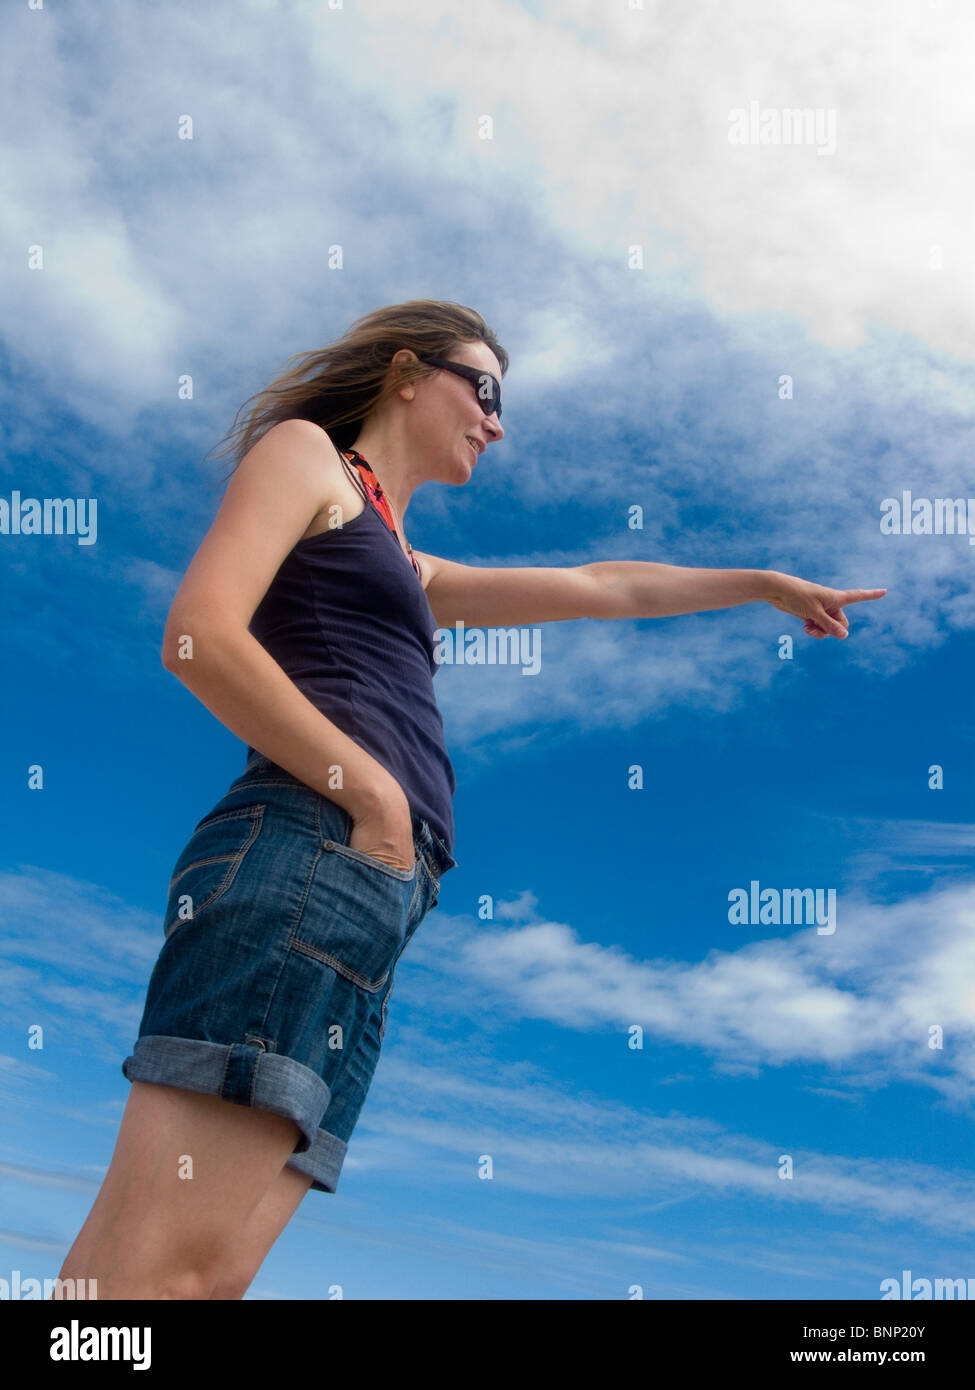 woman pointing, stood against sky - Stock Image